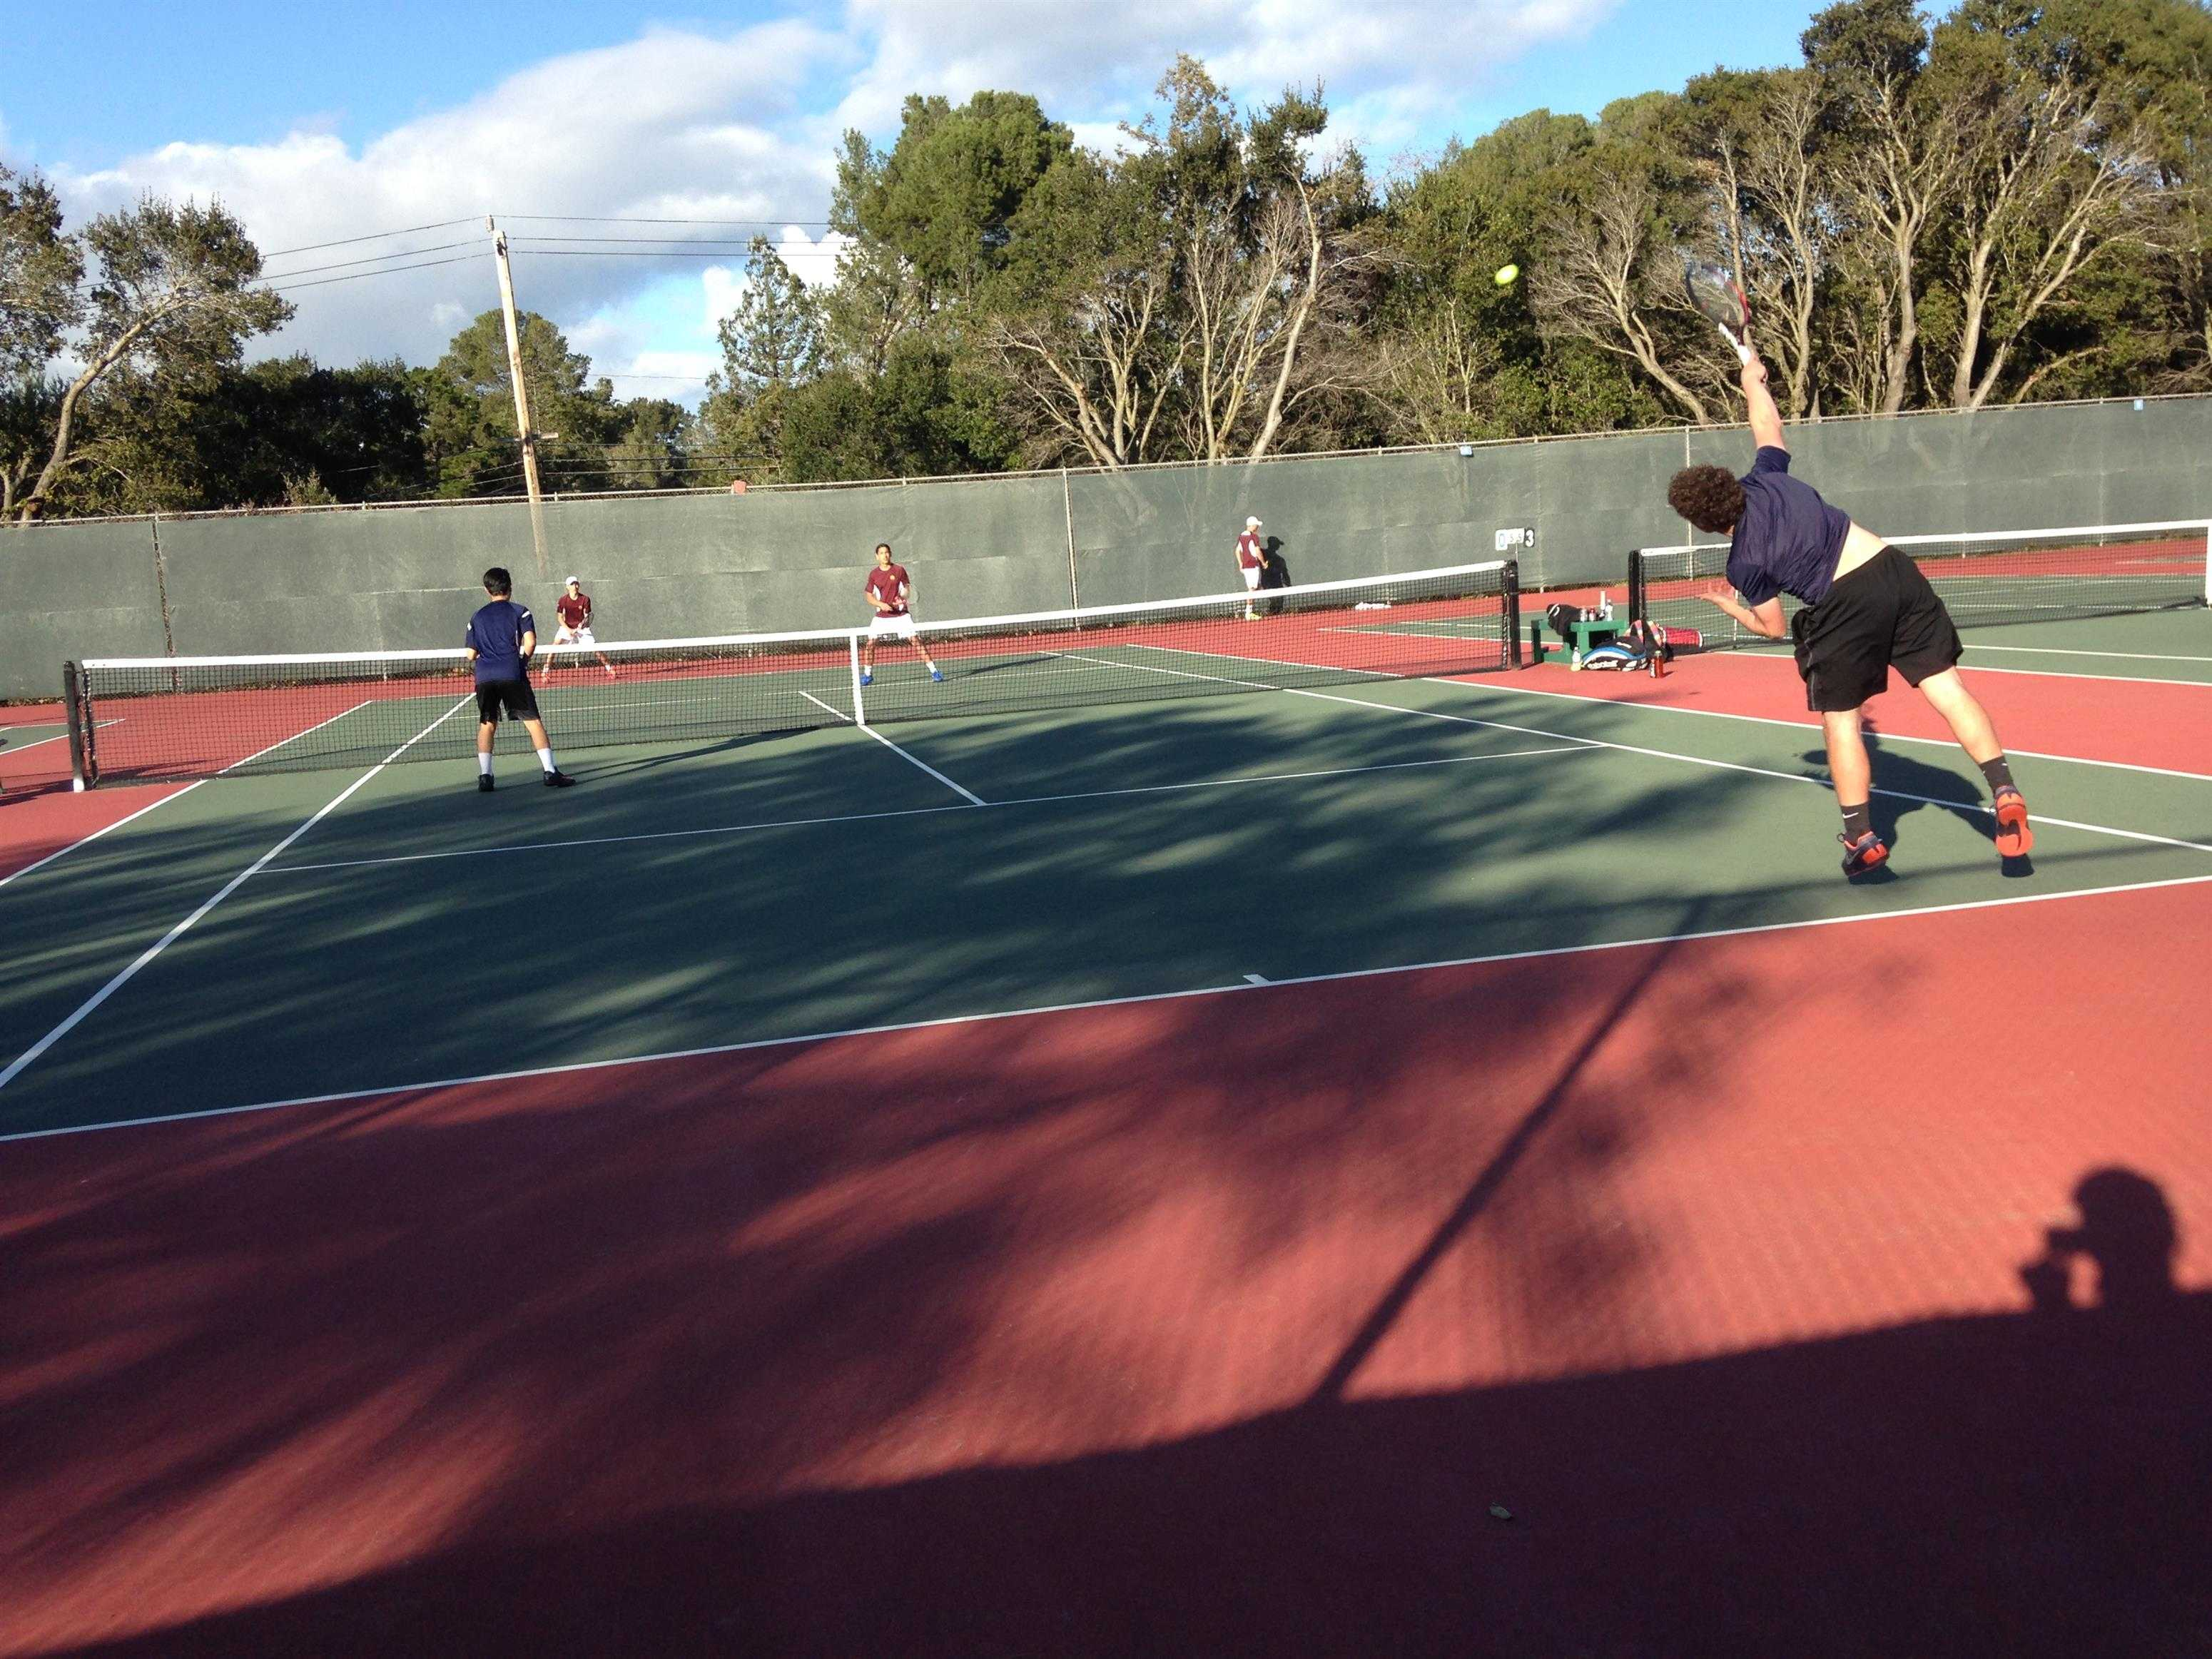 Freshman Ben Barde serves the ball in his doubles match as he and his teammate fight for the victory.